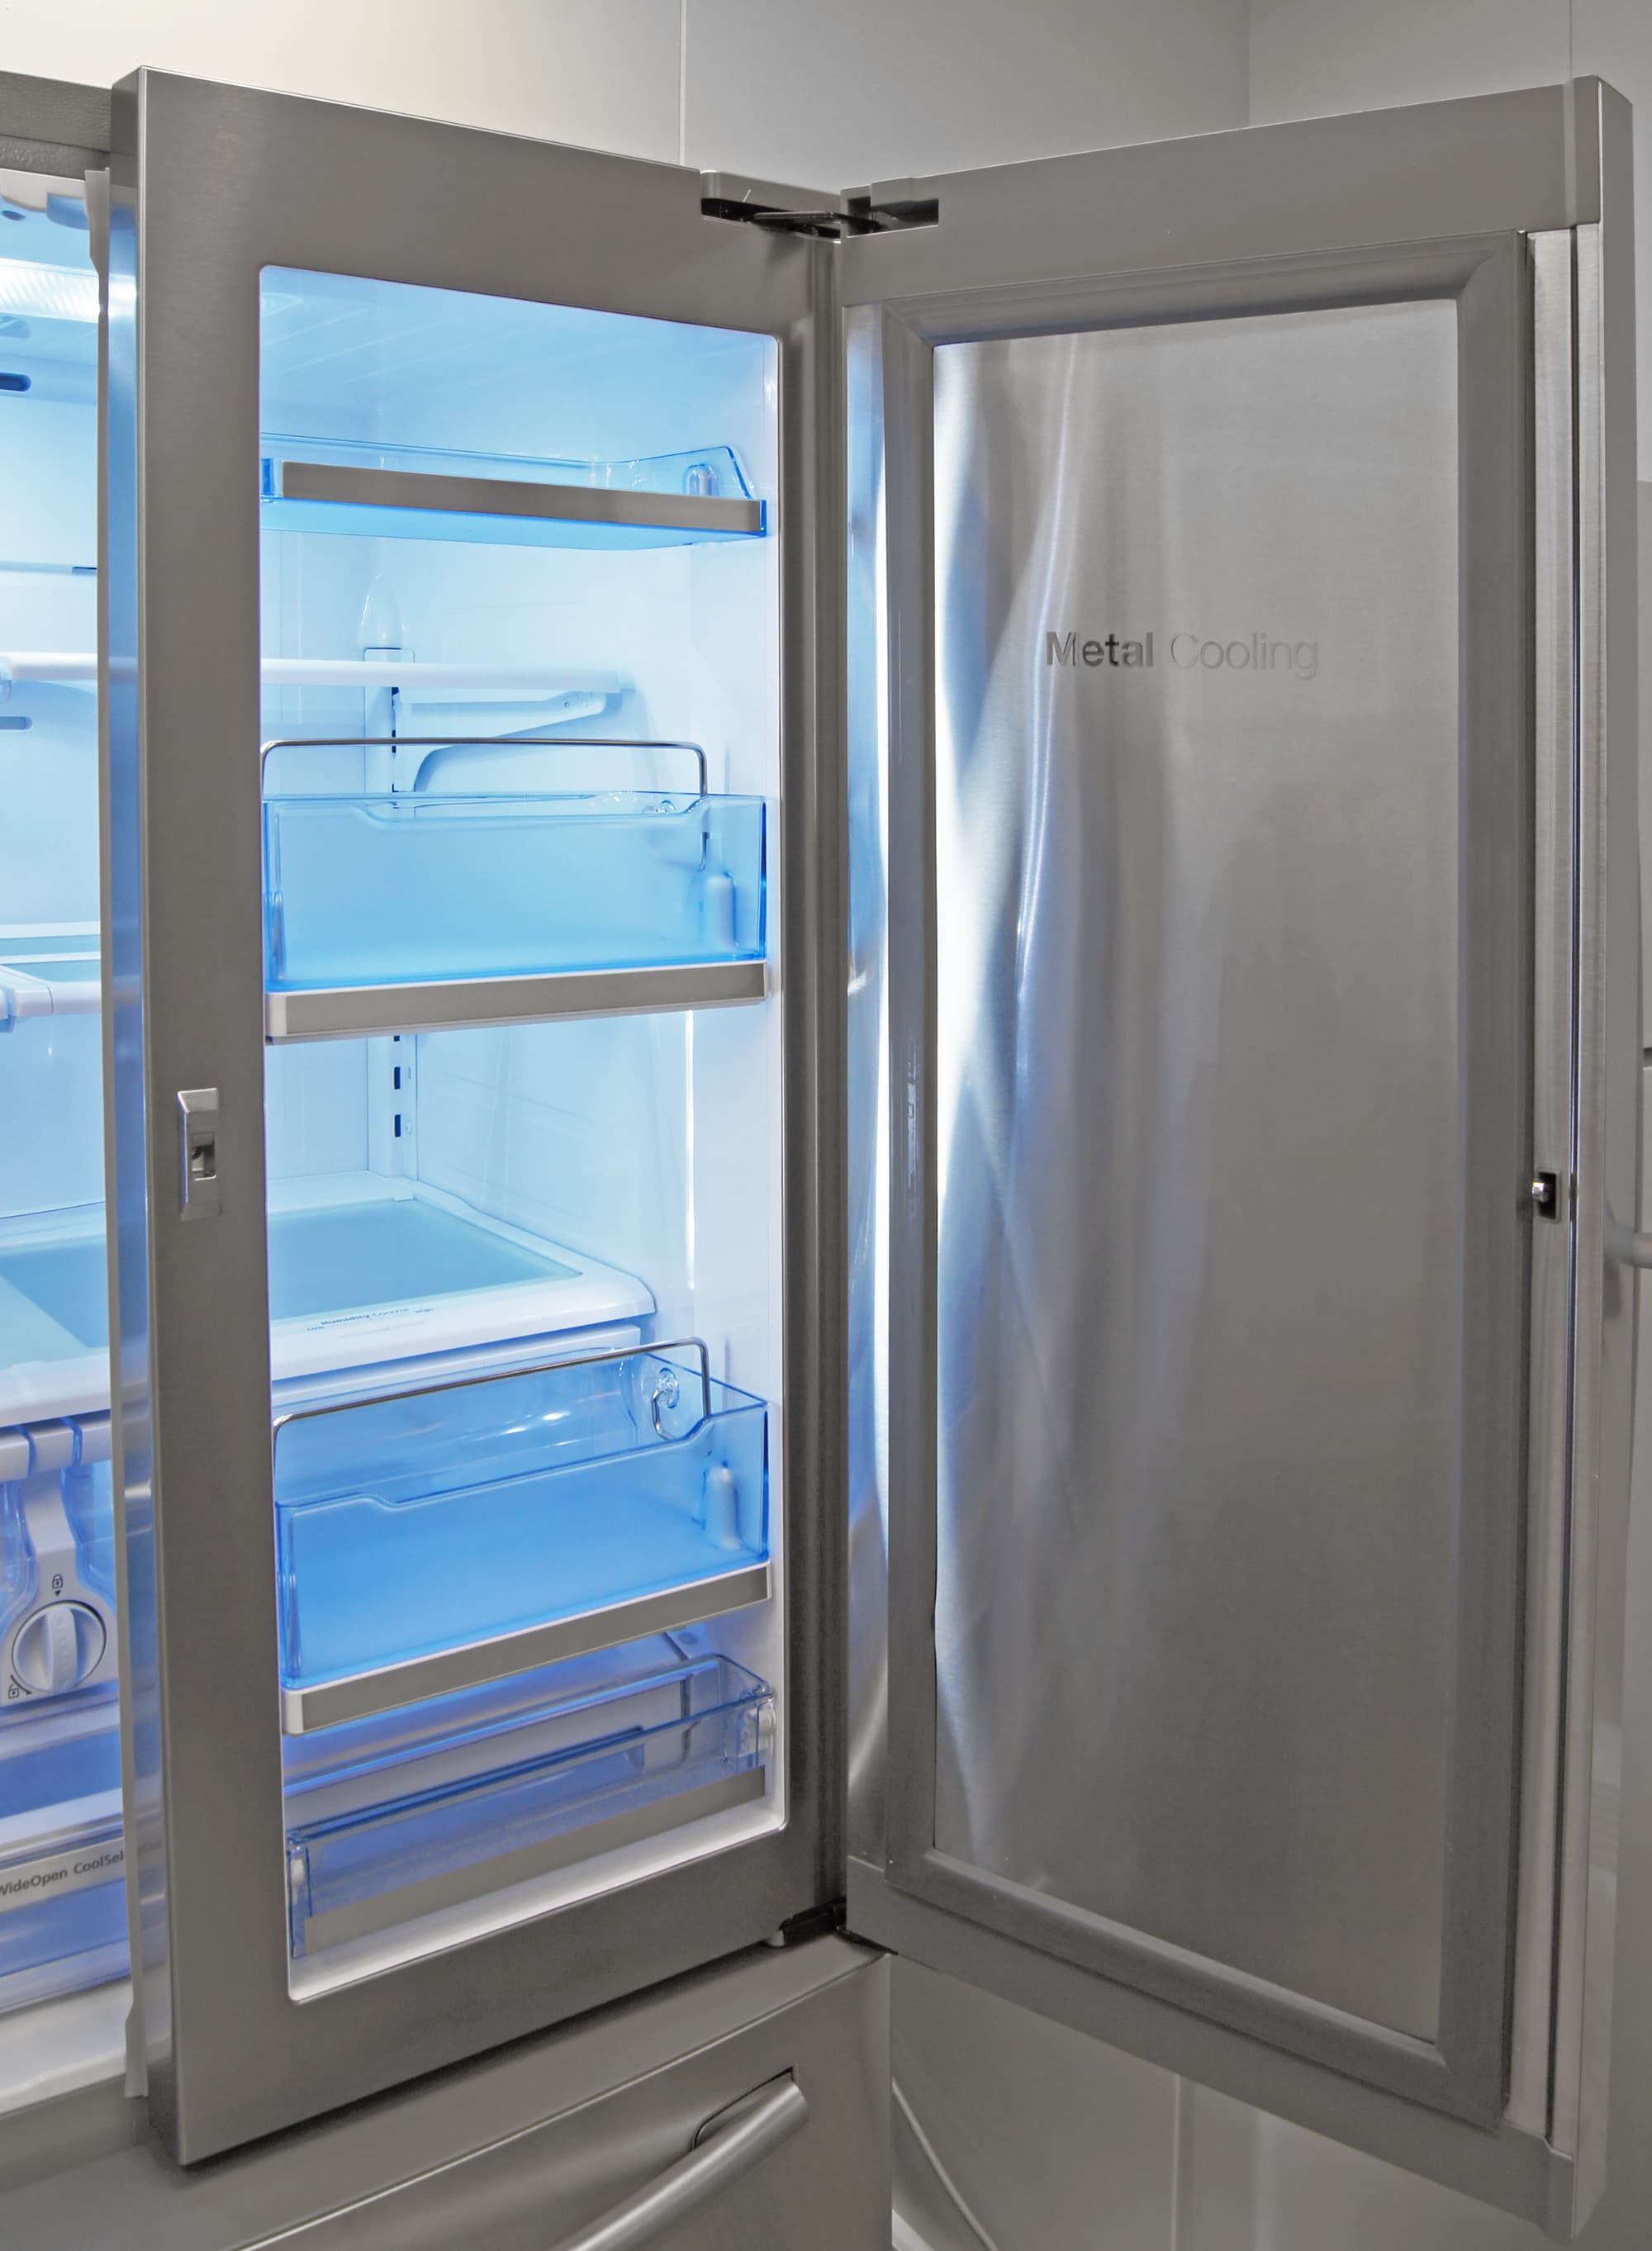 The Samsung RF23HTEDBSR's door-in-door section uses Samsung's Metal Cooling panel to help keep food chilly.